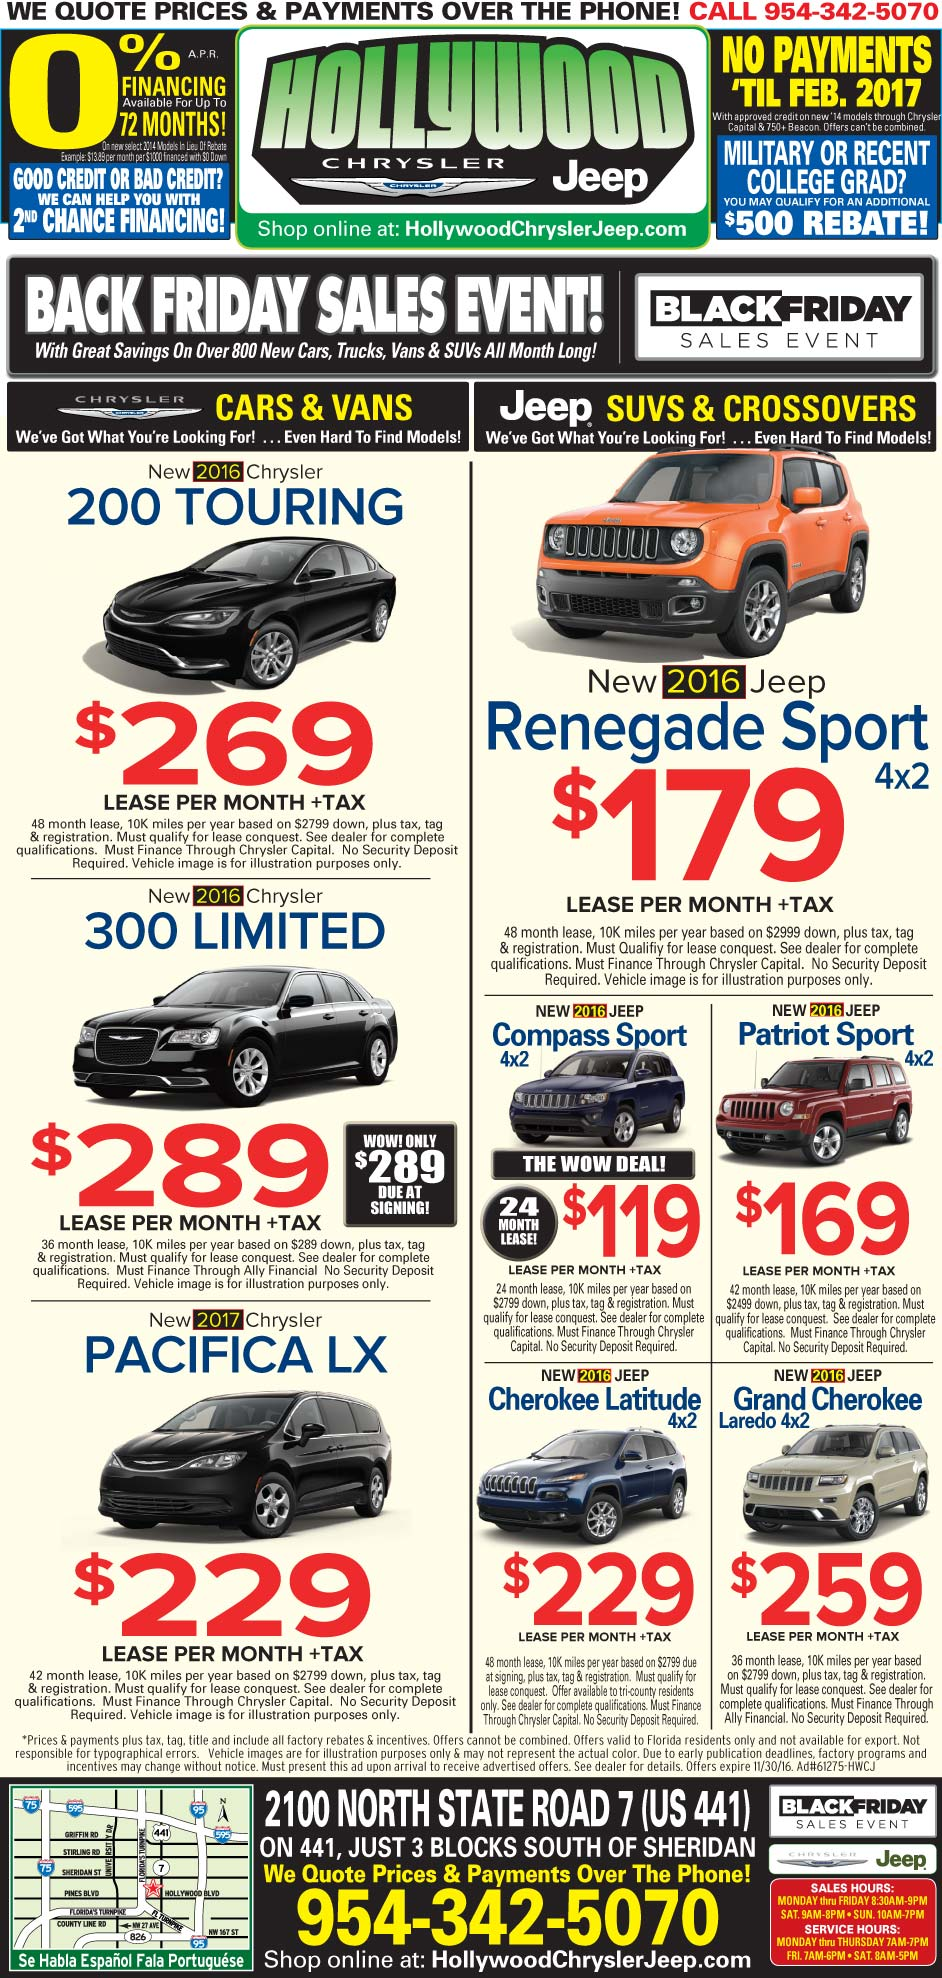 black_friday_deals_hollywood_chrysler_jeep